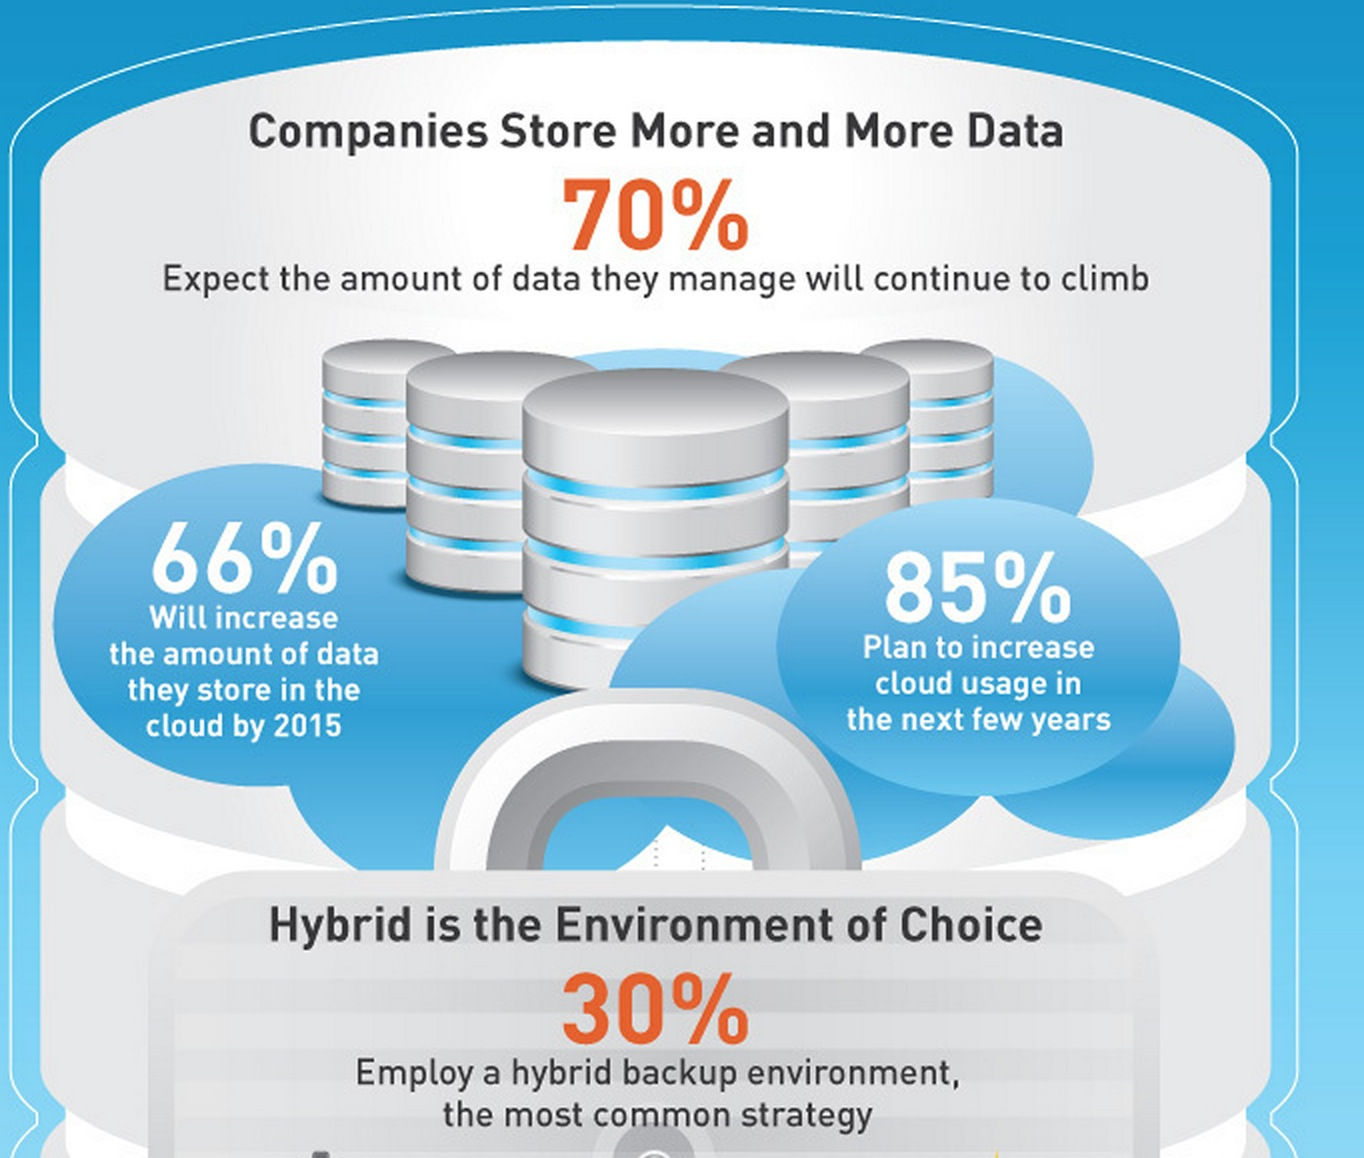 EVault Survey: Companies Using Hybrid Storage for Data Protection & Cloud Backup